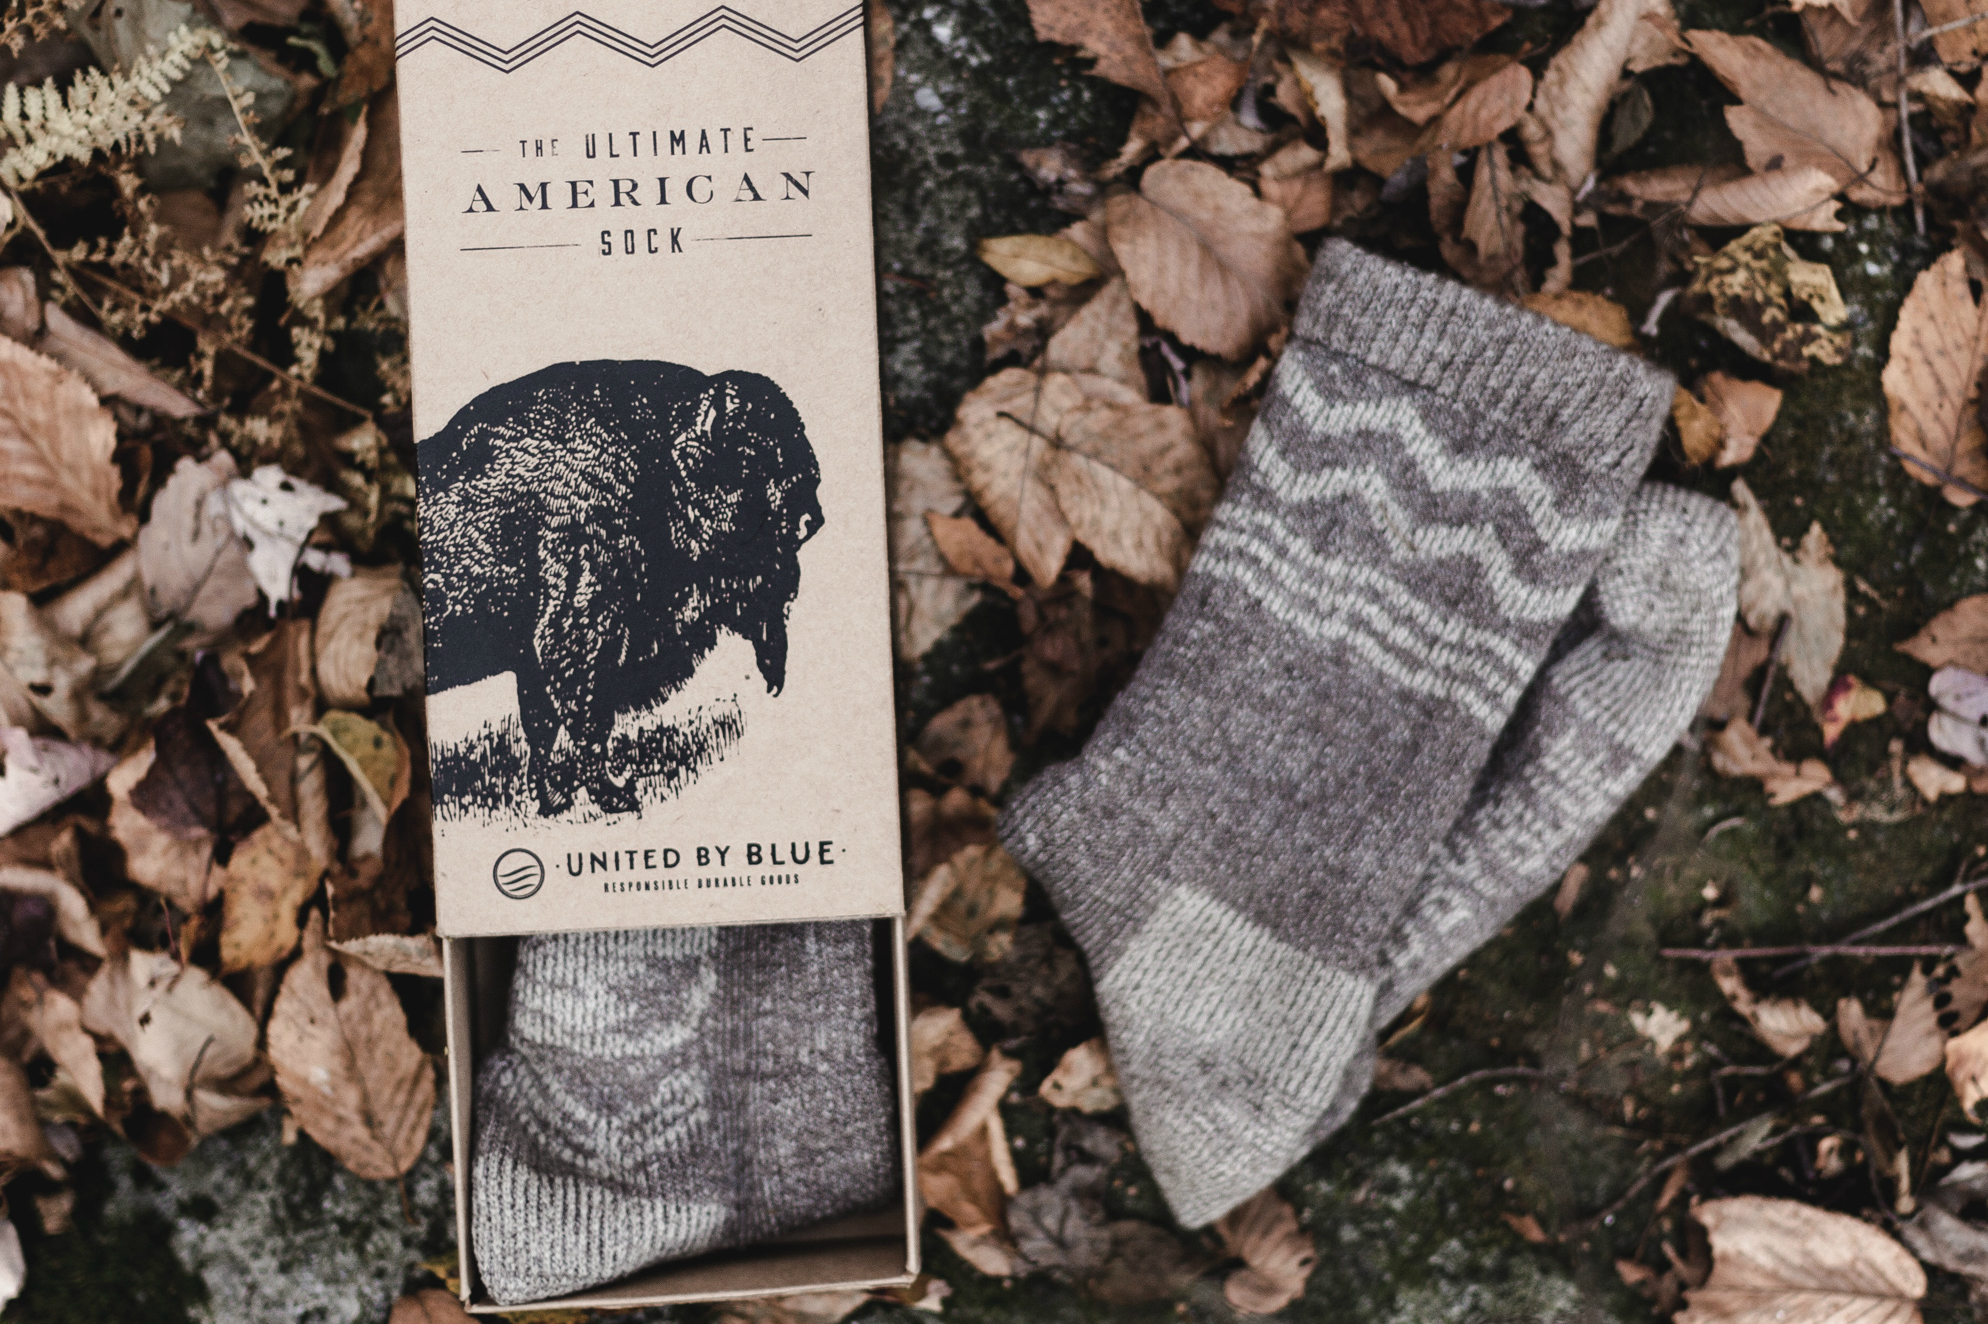 99afa9924db6f Bison, Alpaca and Musk-Ox Socks That Are Warmer Than Wool - SoHo ...